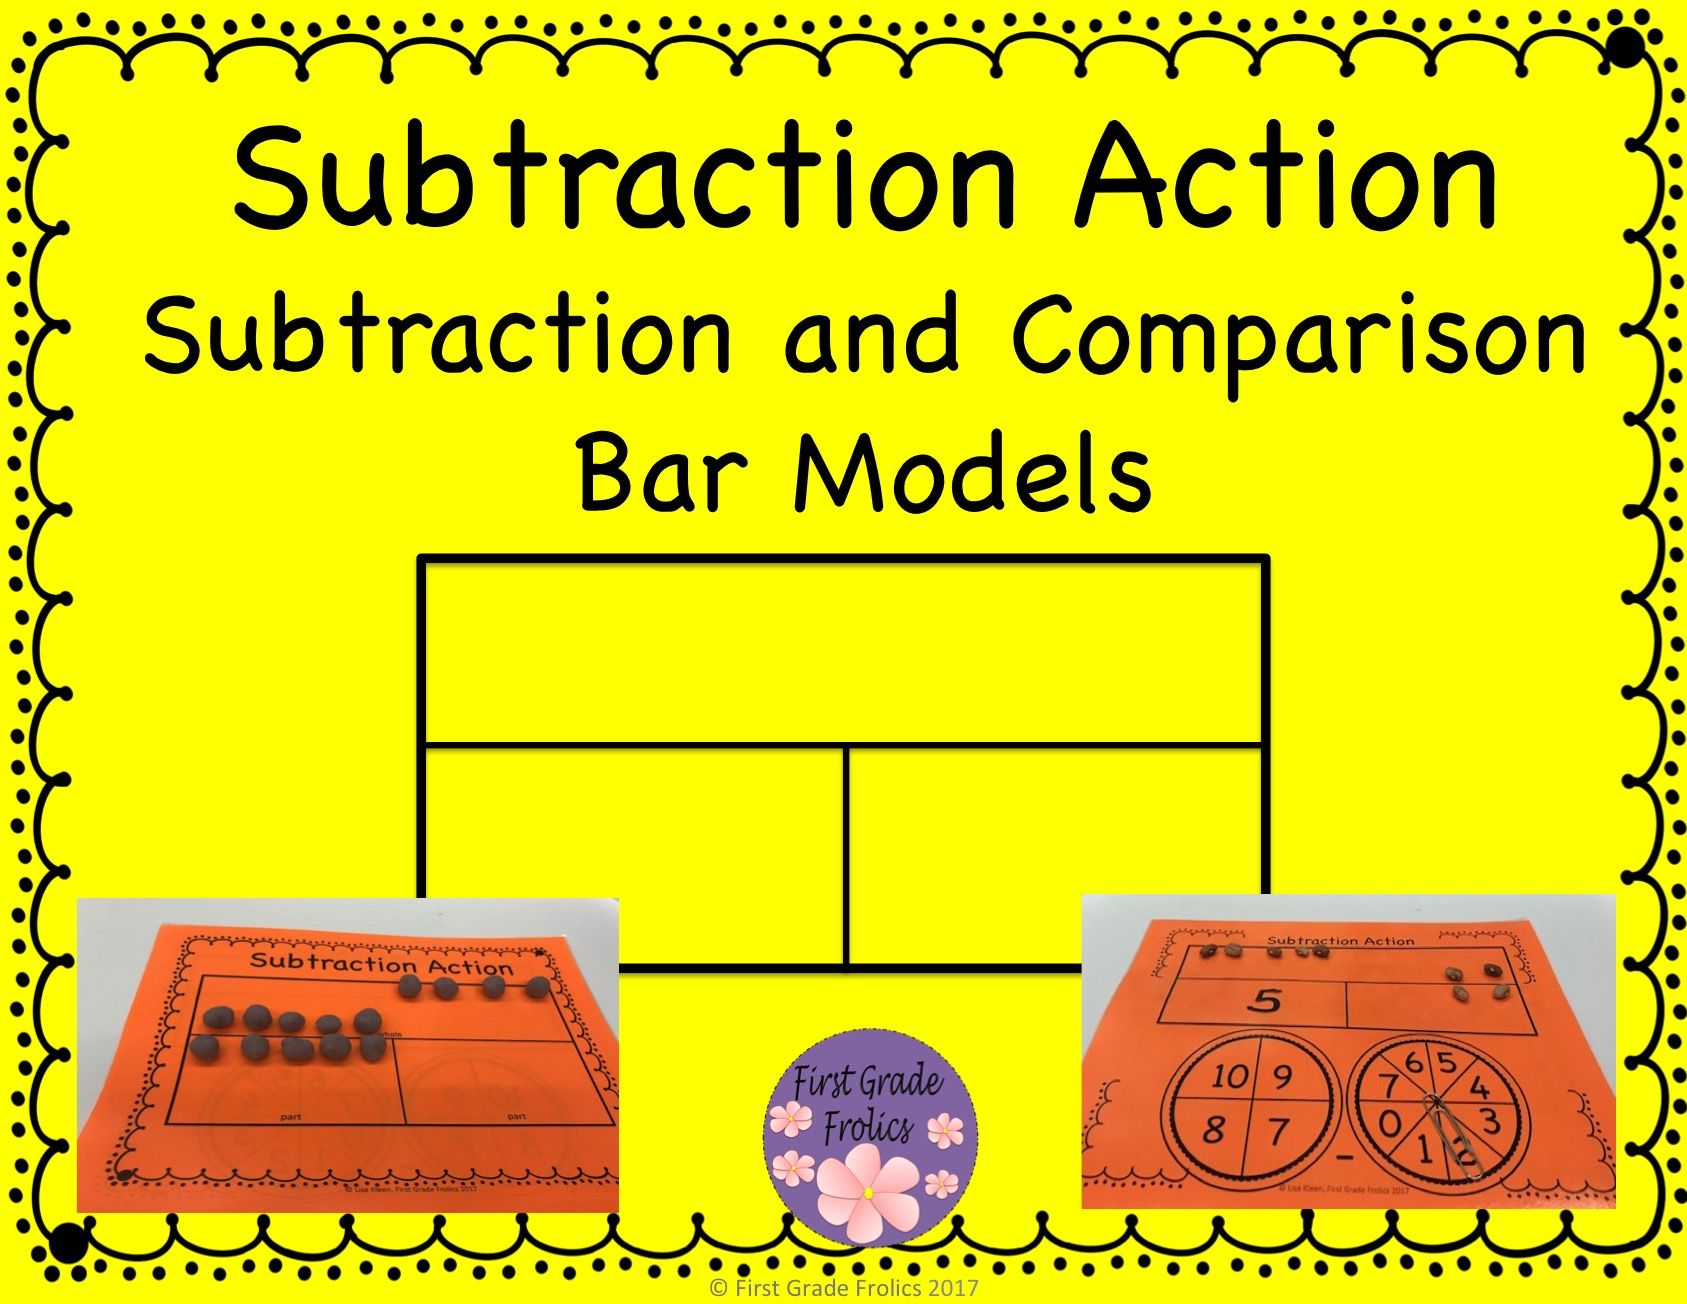 small resolution of Subtraction Action Bar Models from First Grade Frolics   Subtraction